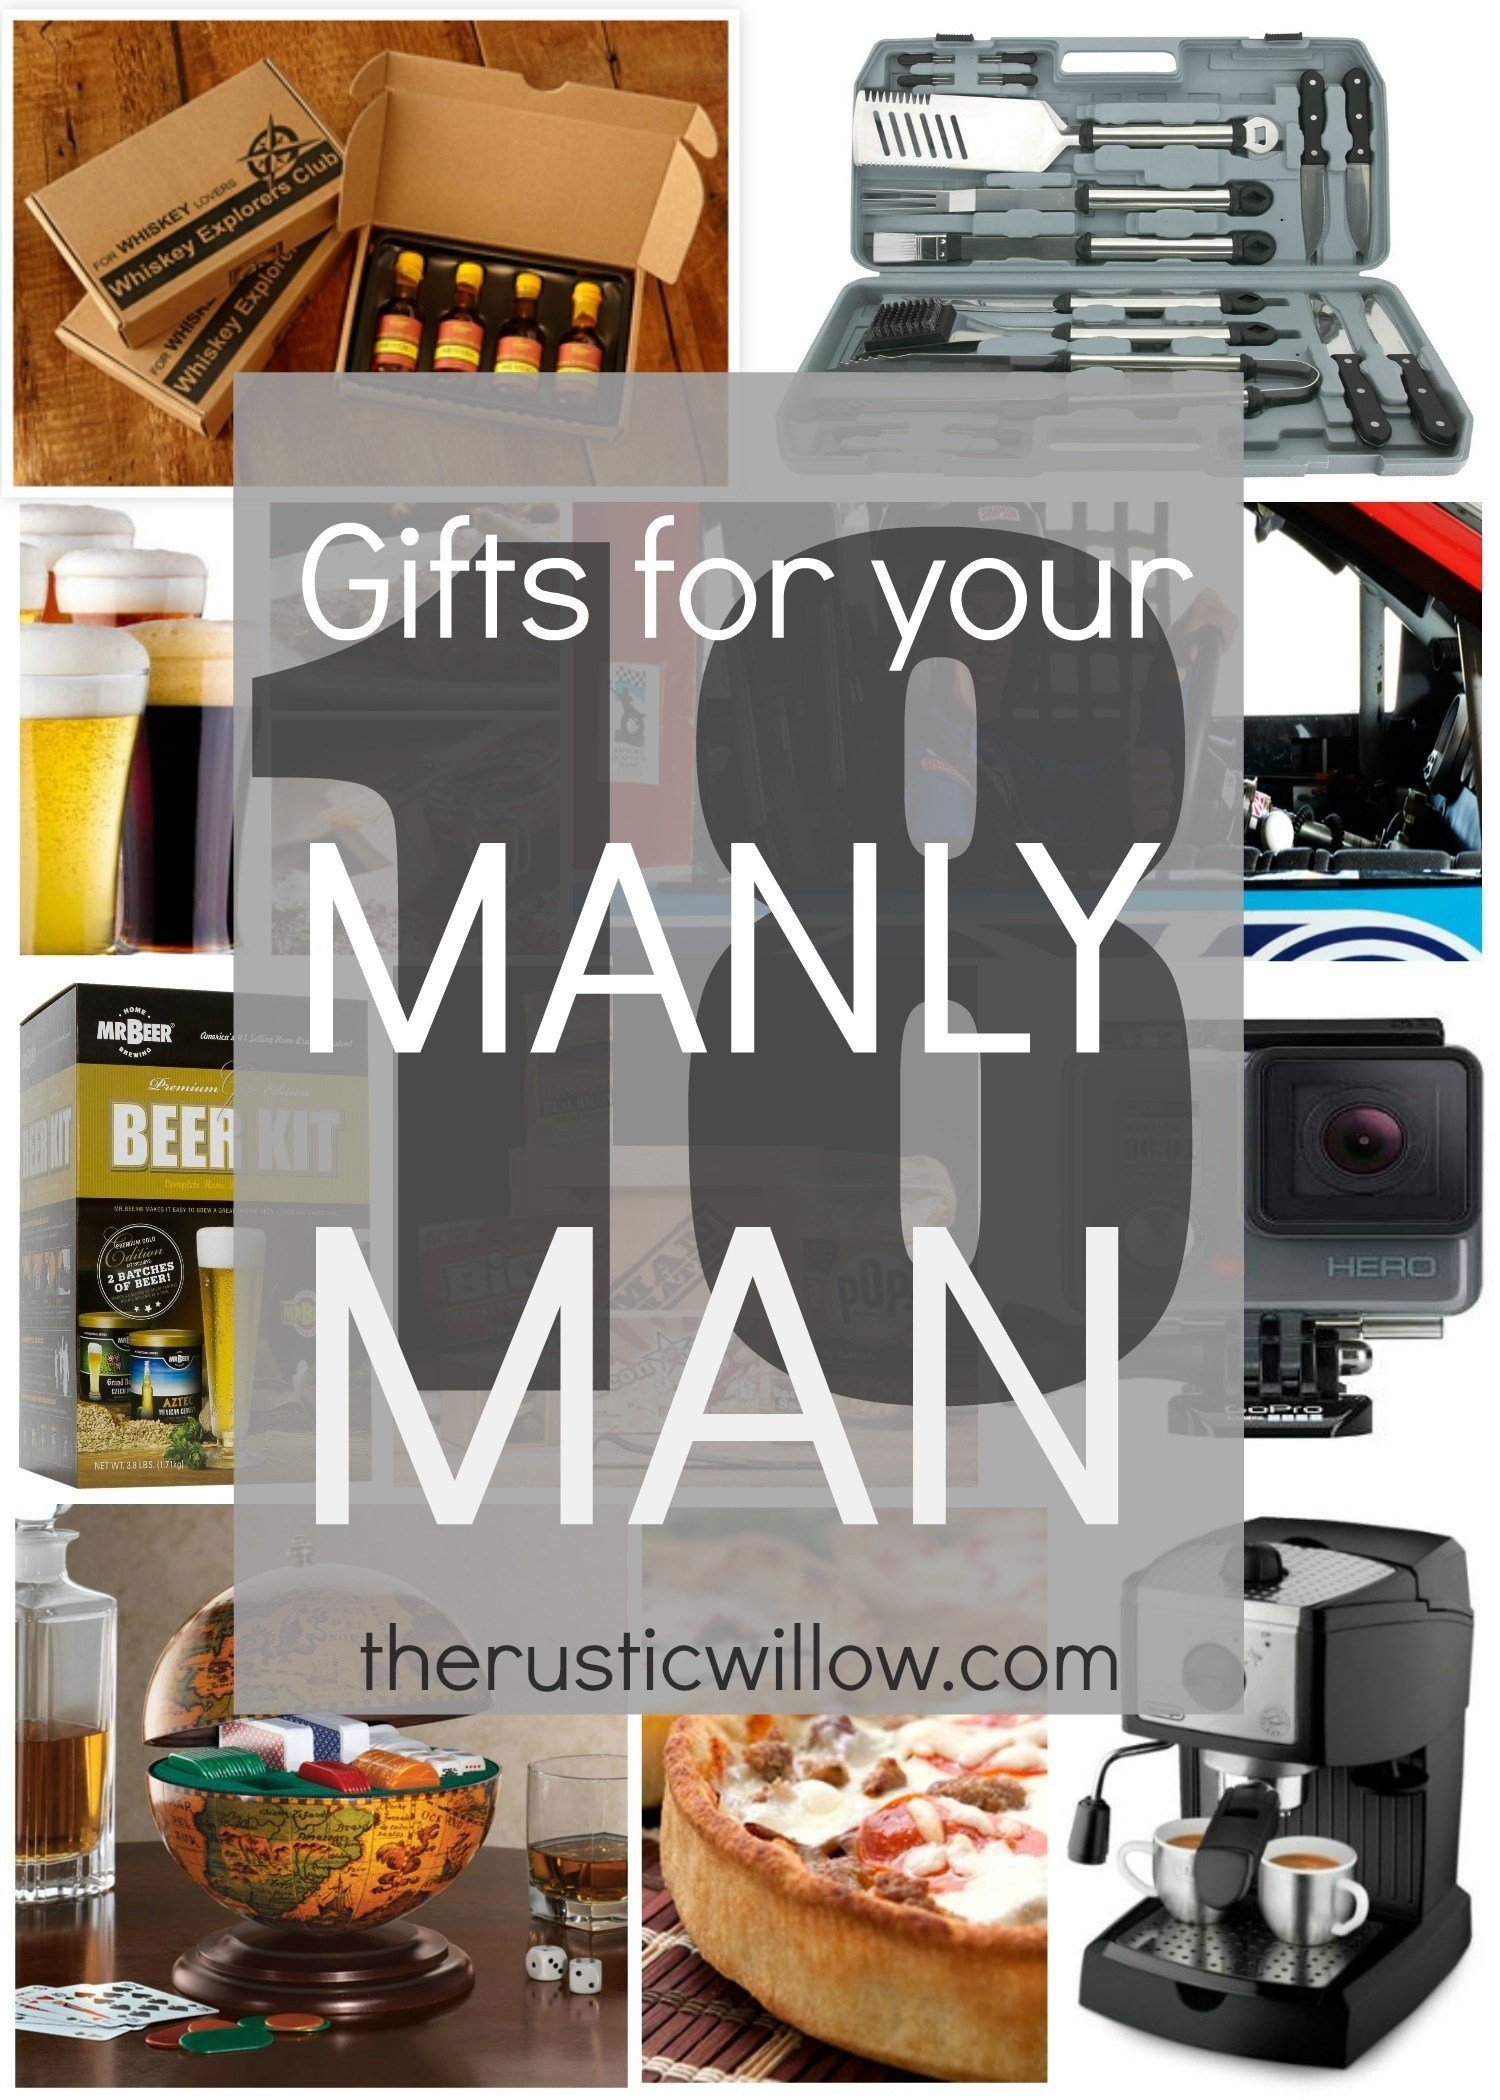 10 Elegant Food Gift Ideas For Men gift guide for men the gifts men actually want the rustic willow 1 2020